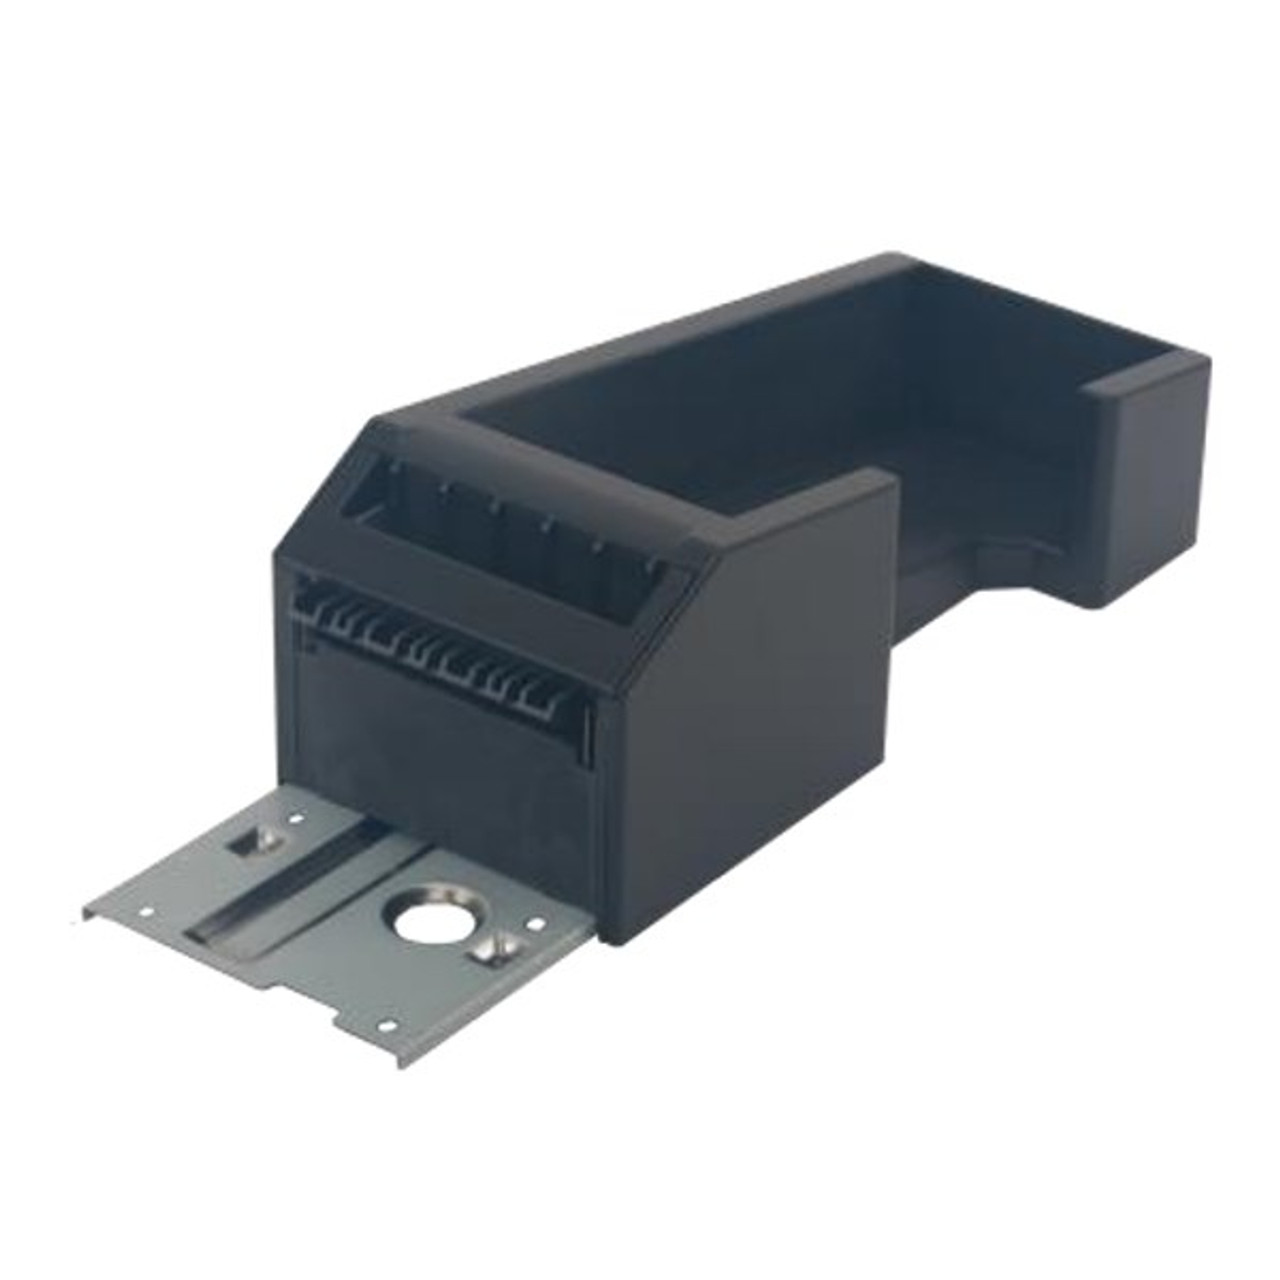 Image for Fujitsu Tray for F9870 CX Computer Superstore